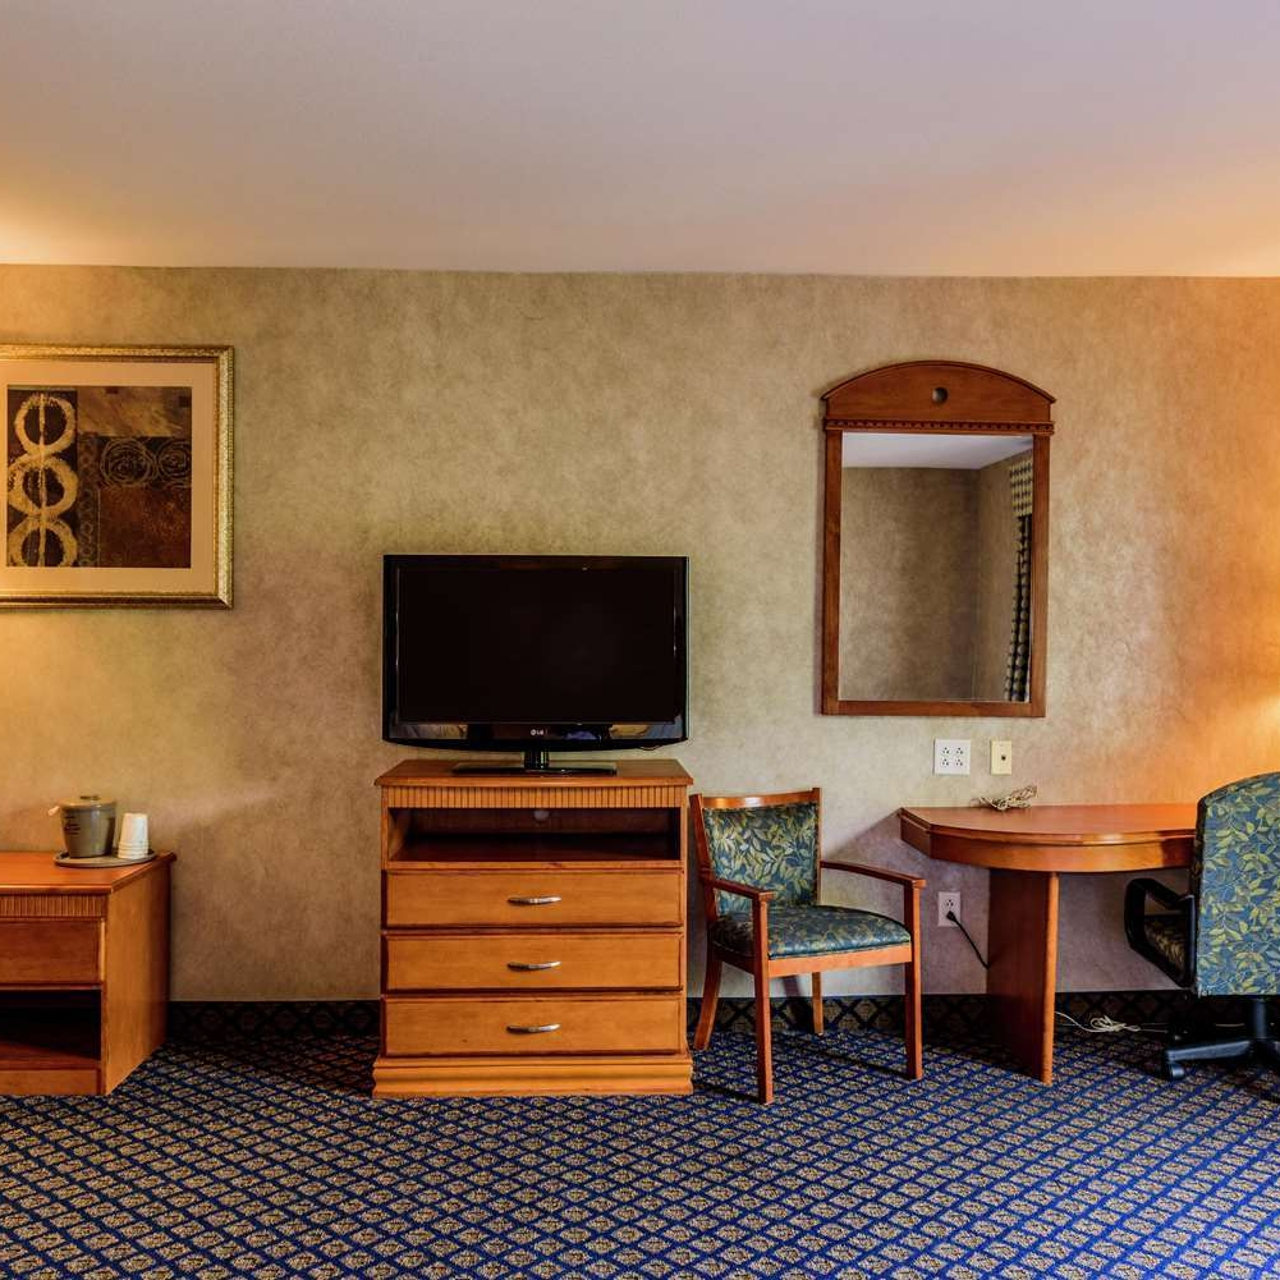 Hampton Inn And Suites Jamestown United States Of America At Hrs With Free Services